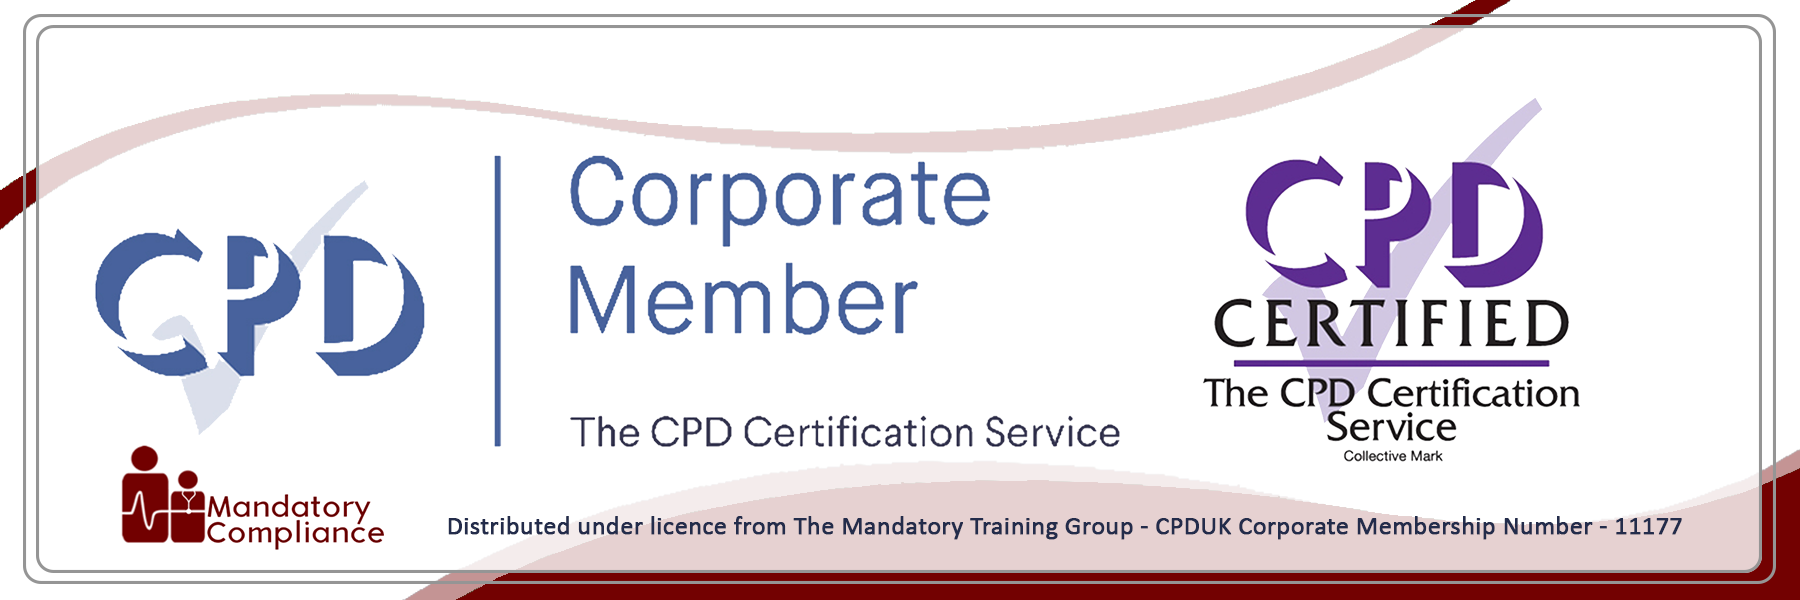 Mandatory Health and Social Care Training Courses - E-Learning Courses - Mandatory Compliance UK -